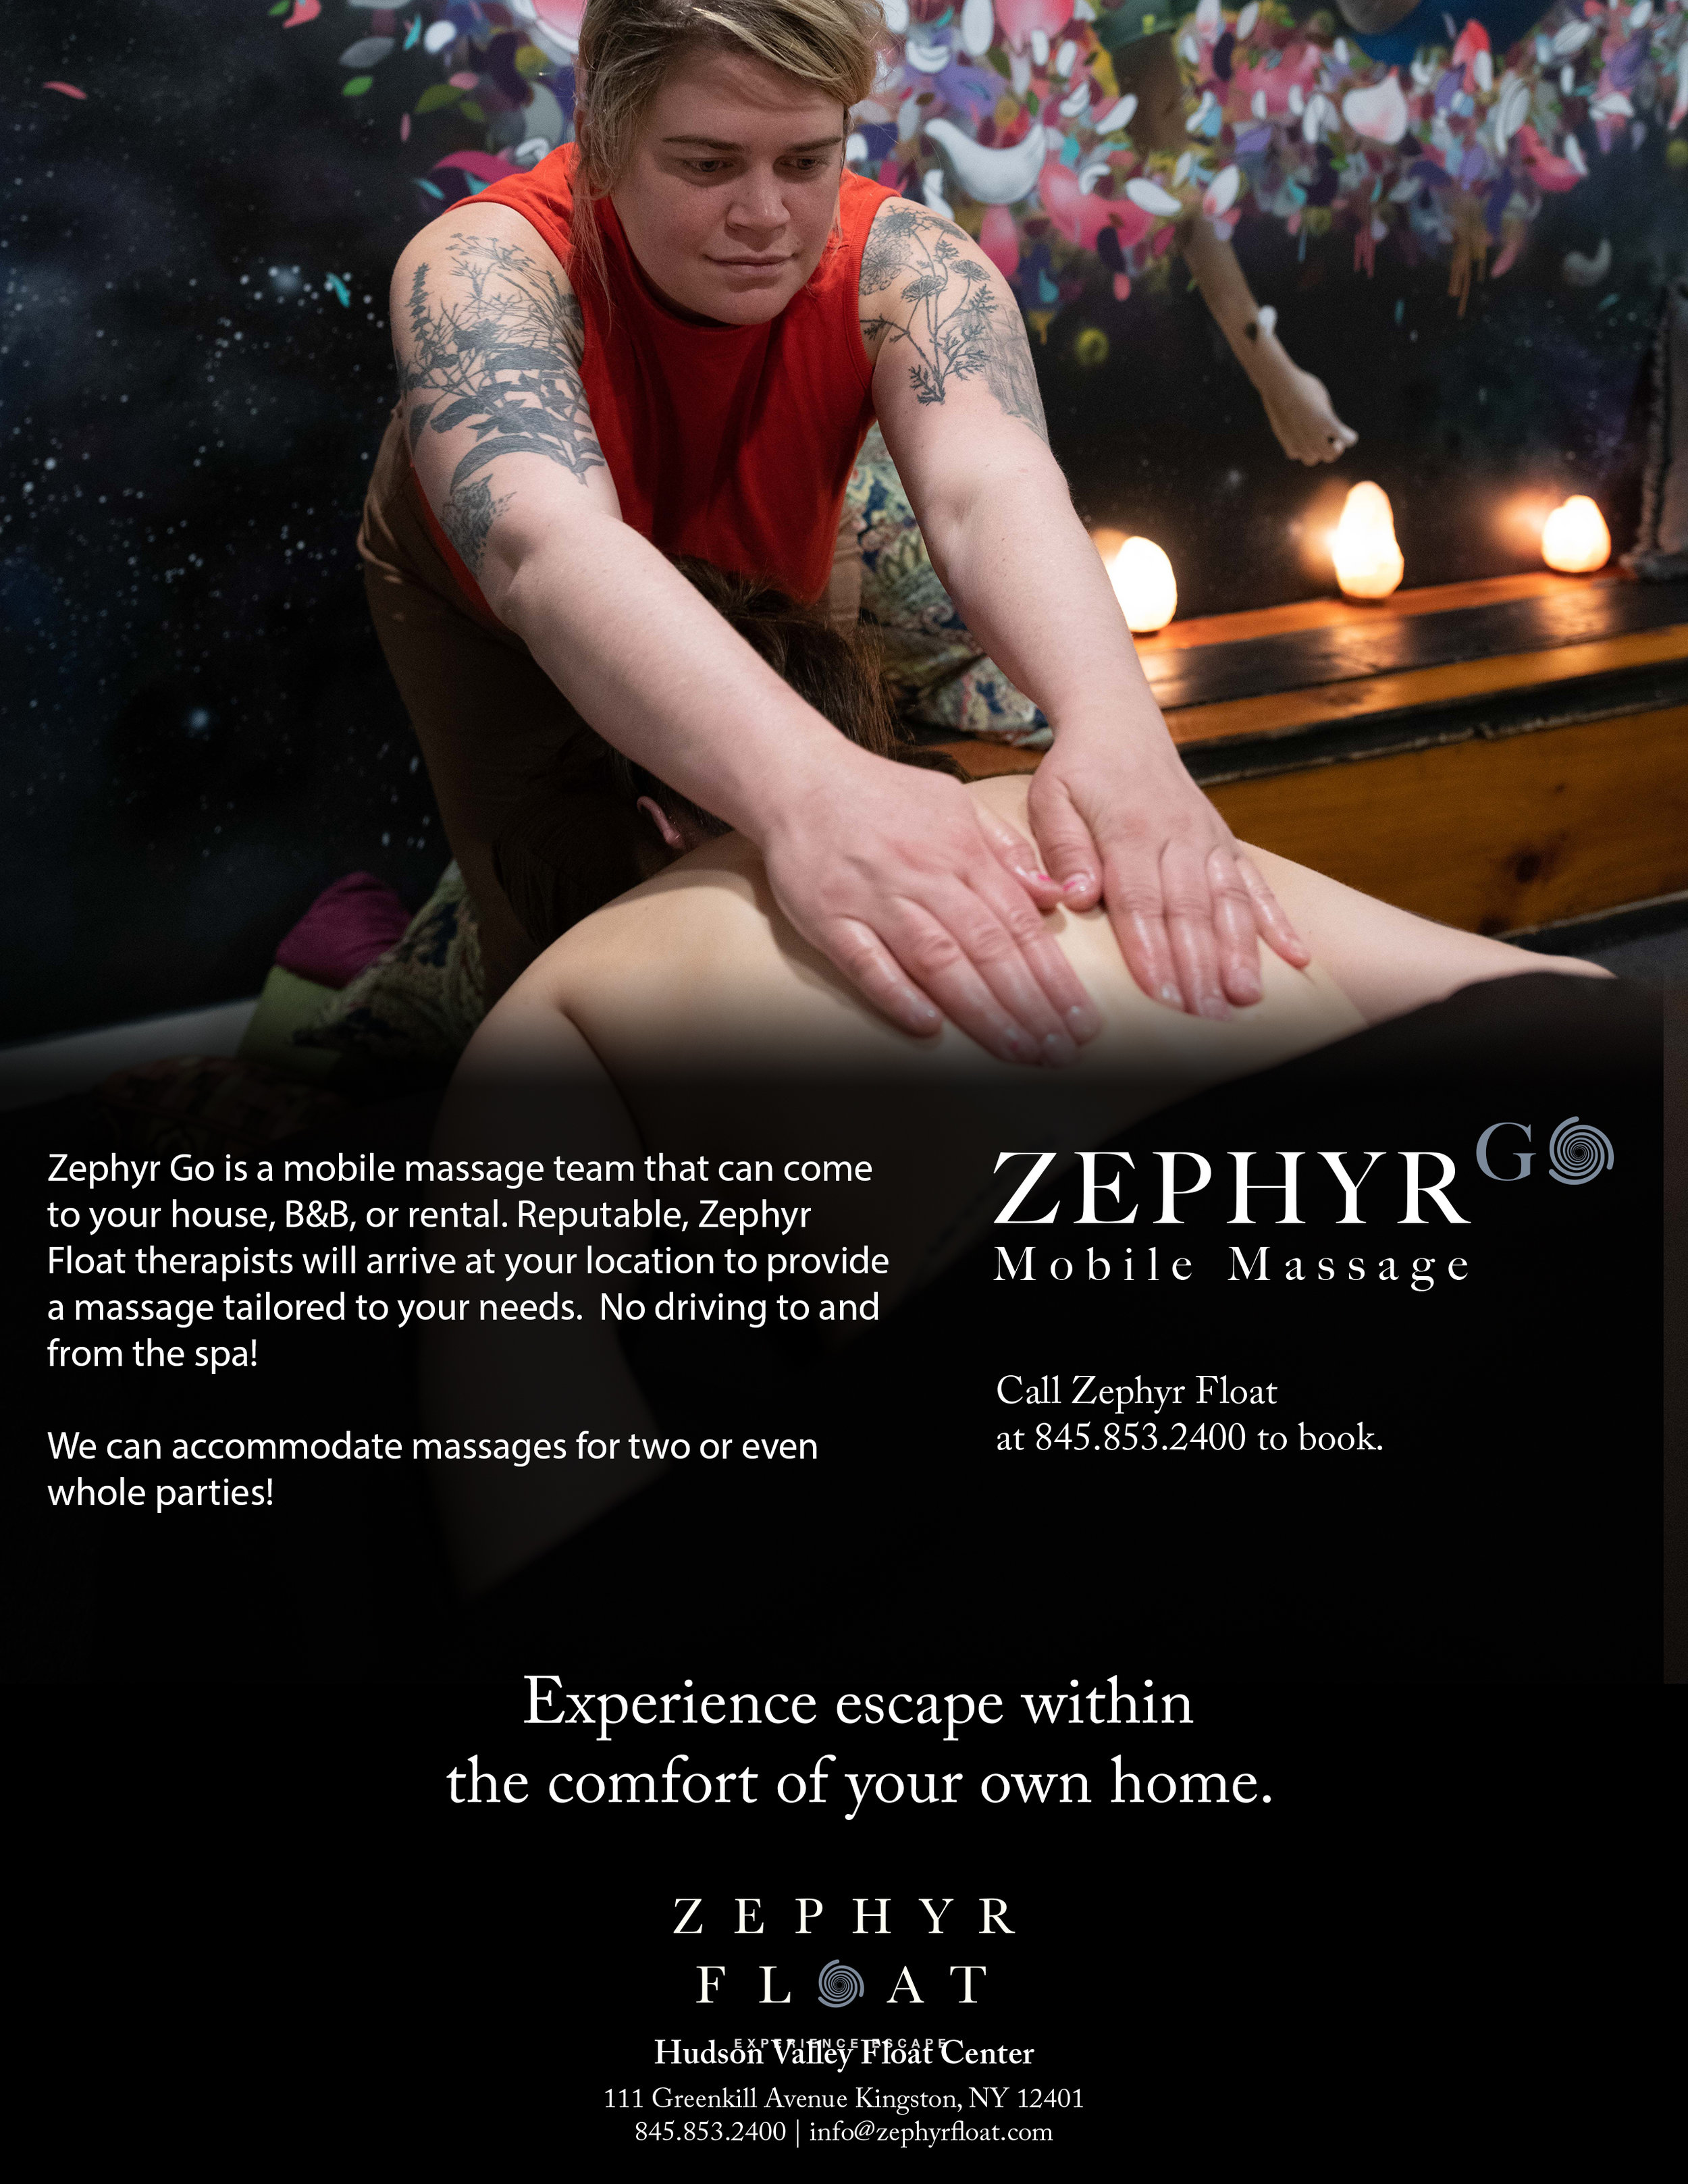 - Experience escape within the comfort of your own home!Introducing: ZEPHYR GO - a mobile massage team that visits your house, B&B, or rental! Reputable, Zephyr Float therapists will arrive at your location to provide a massage tailored to your needs. No driving to and from the spa!Zephyr Go massages cost $150. We will travel up to 20 miles from Kingston to your residence.Call Zephyr Float 845.853.2400 to book.Can accommodate massages for two or even whole parties!